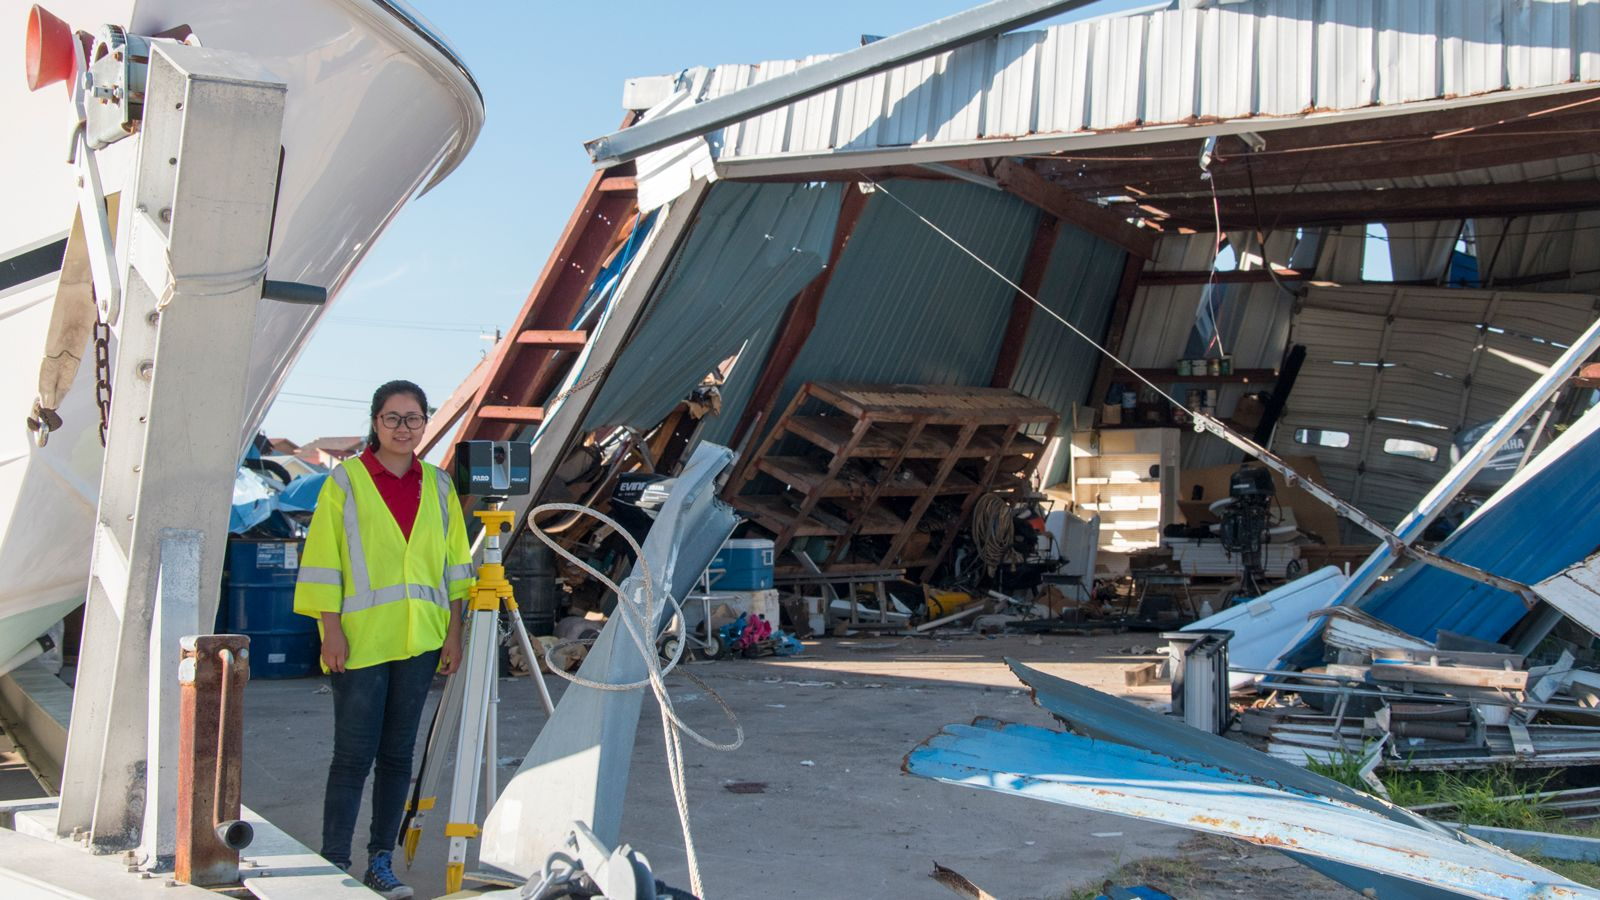 Yijun Liao collecting lidar measurements at a boat repair shop in Port Aransas, TX.